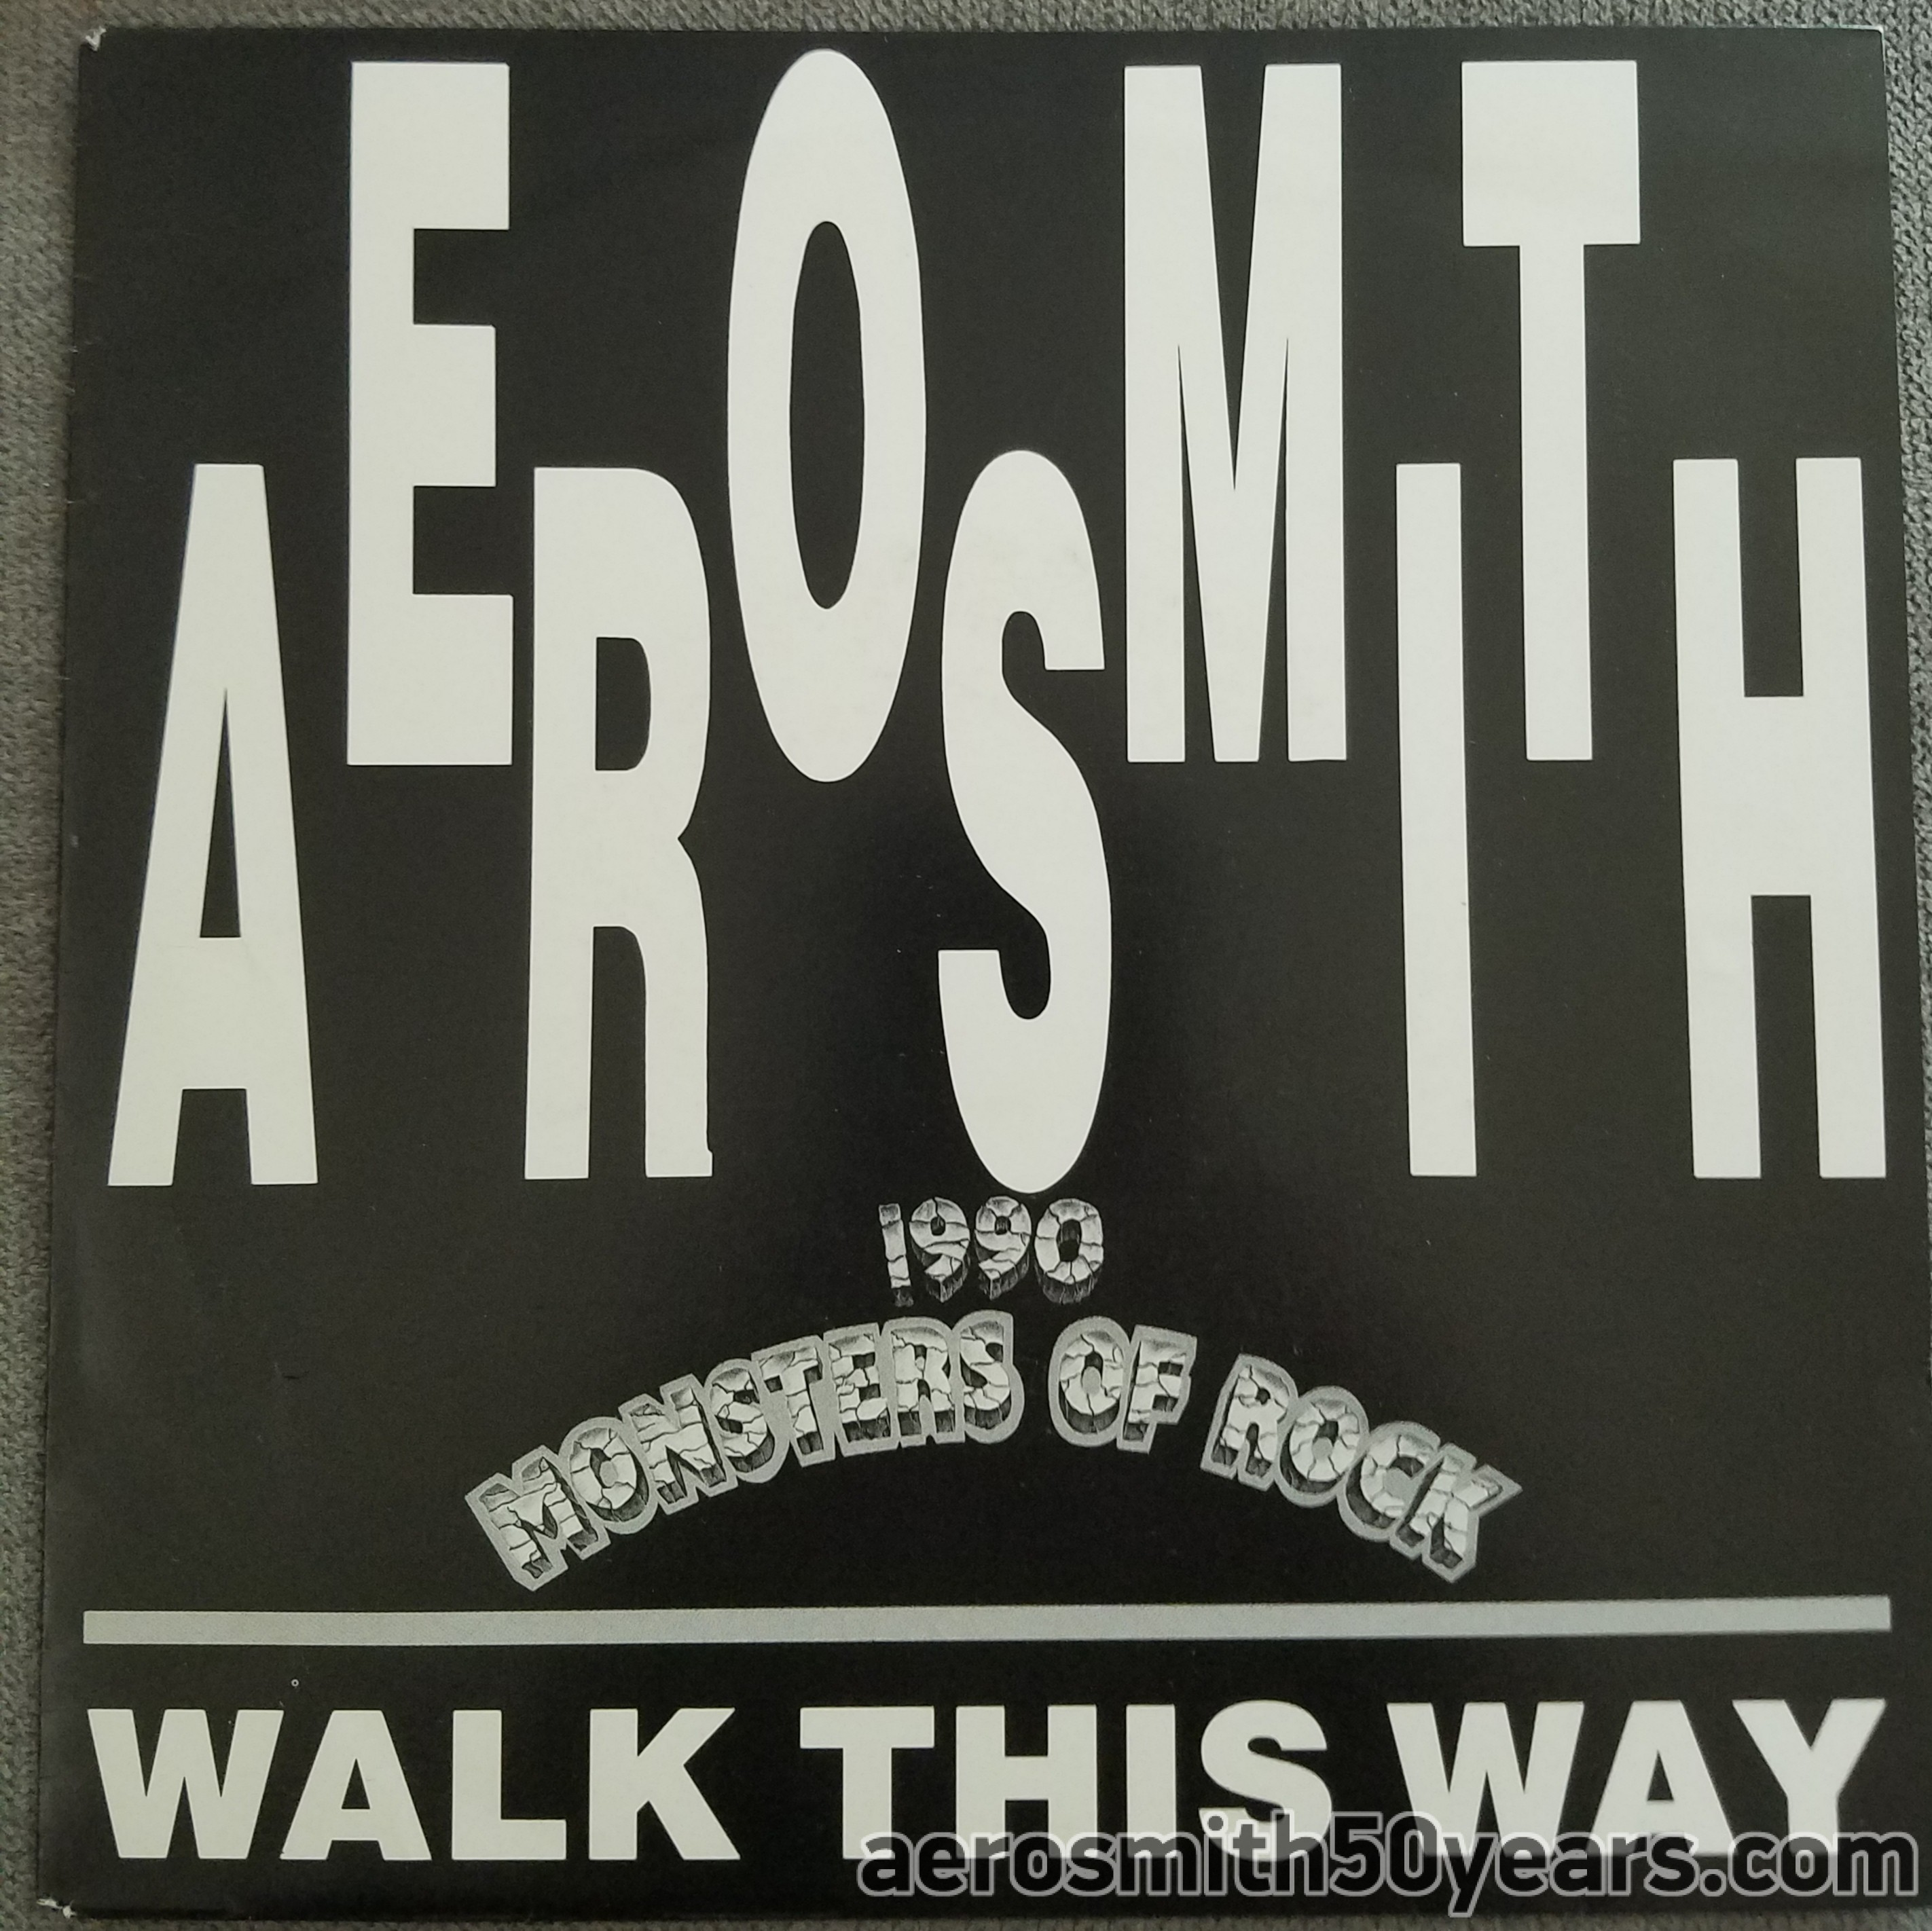 Walk This Way / Come Together – 1990 Monsters Of Rock 7″ French Promotional 45 CBS.